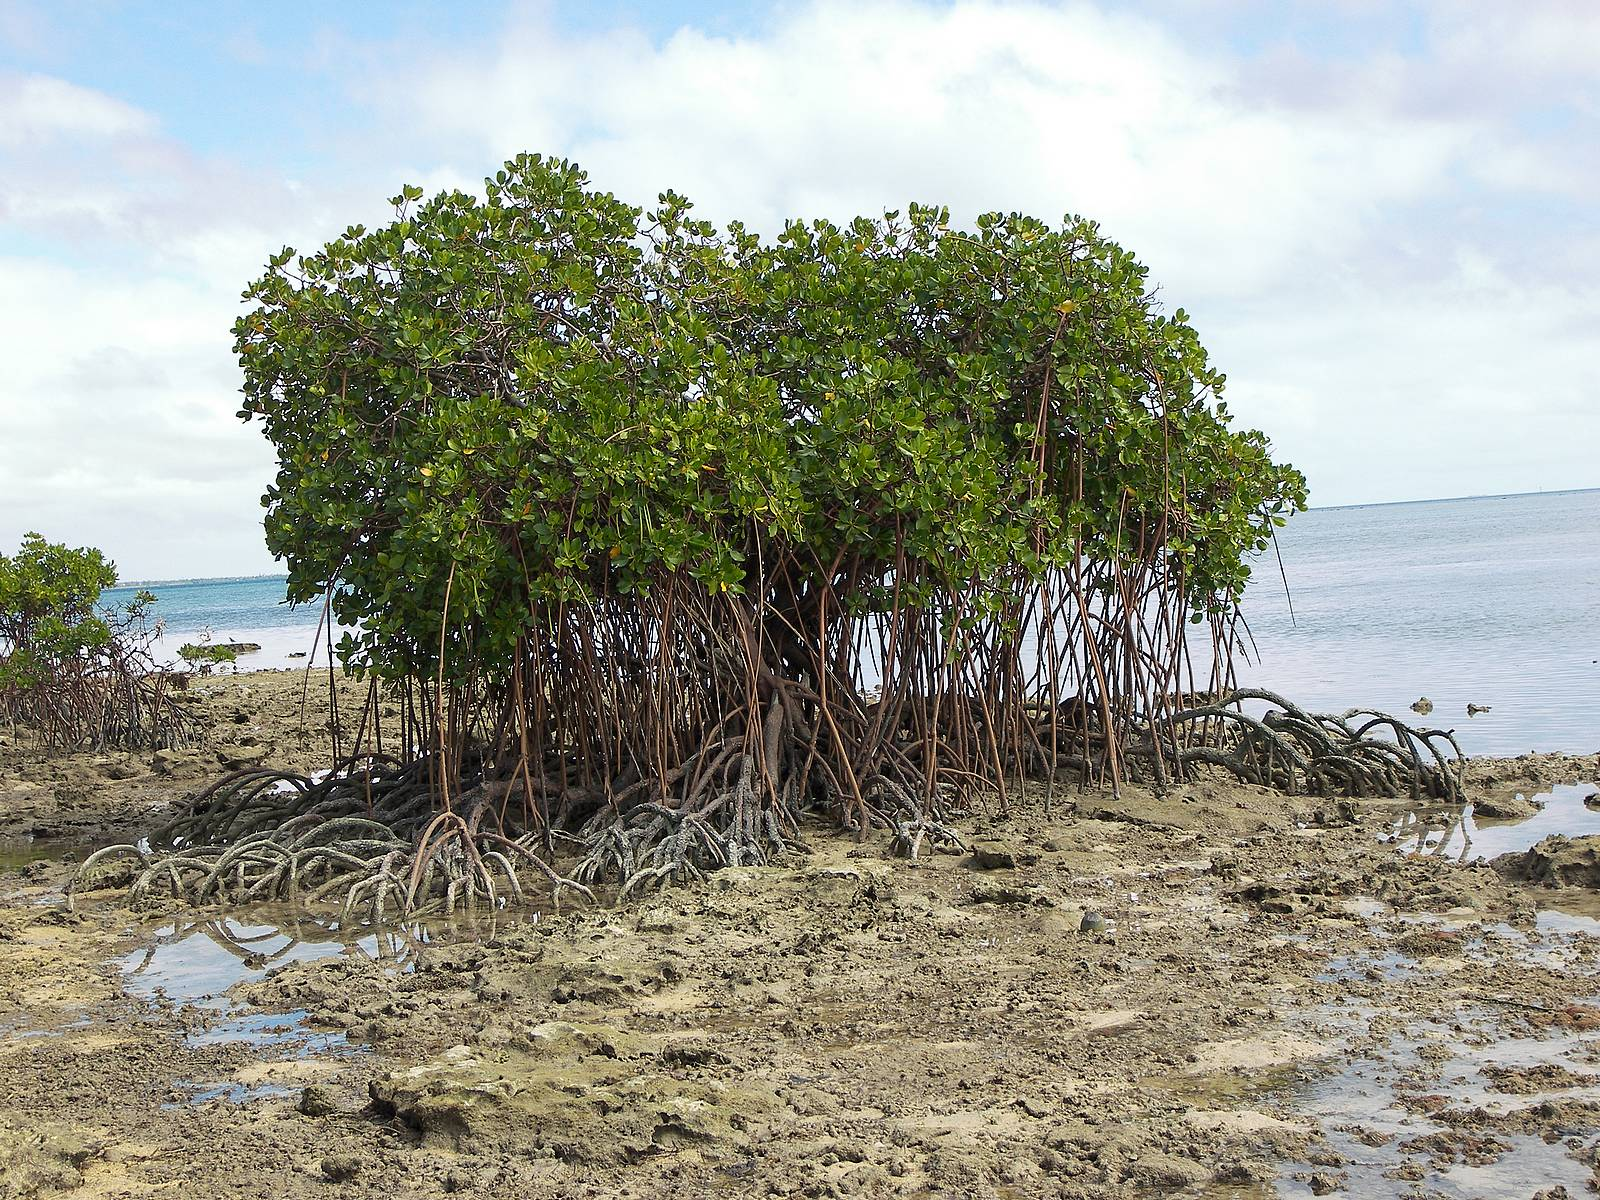 Mangrove tree wallpapers hd | Wallpapers-Wallpaper Free 3979